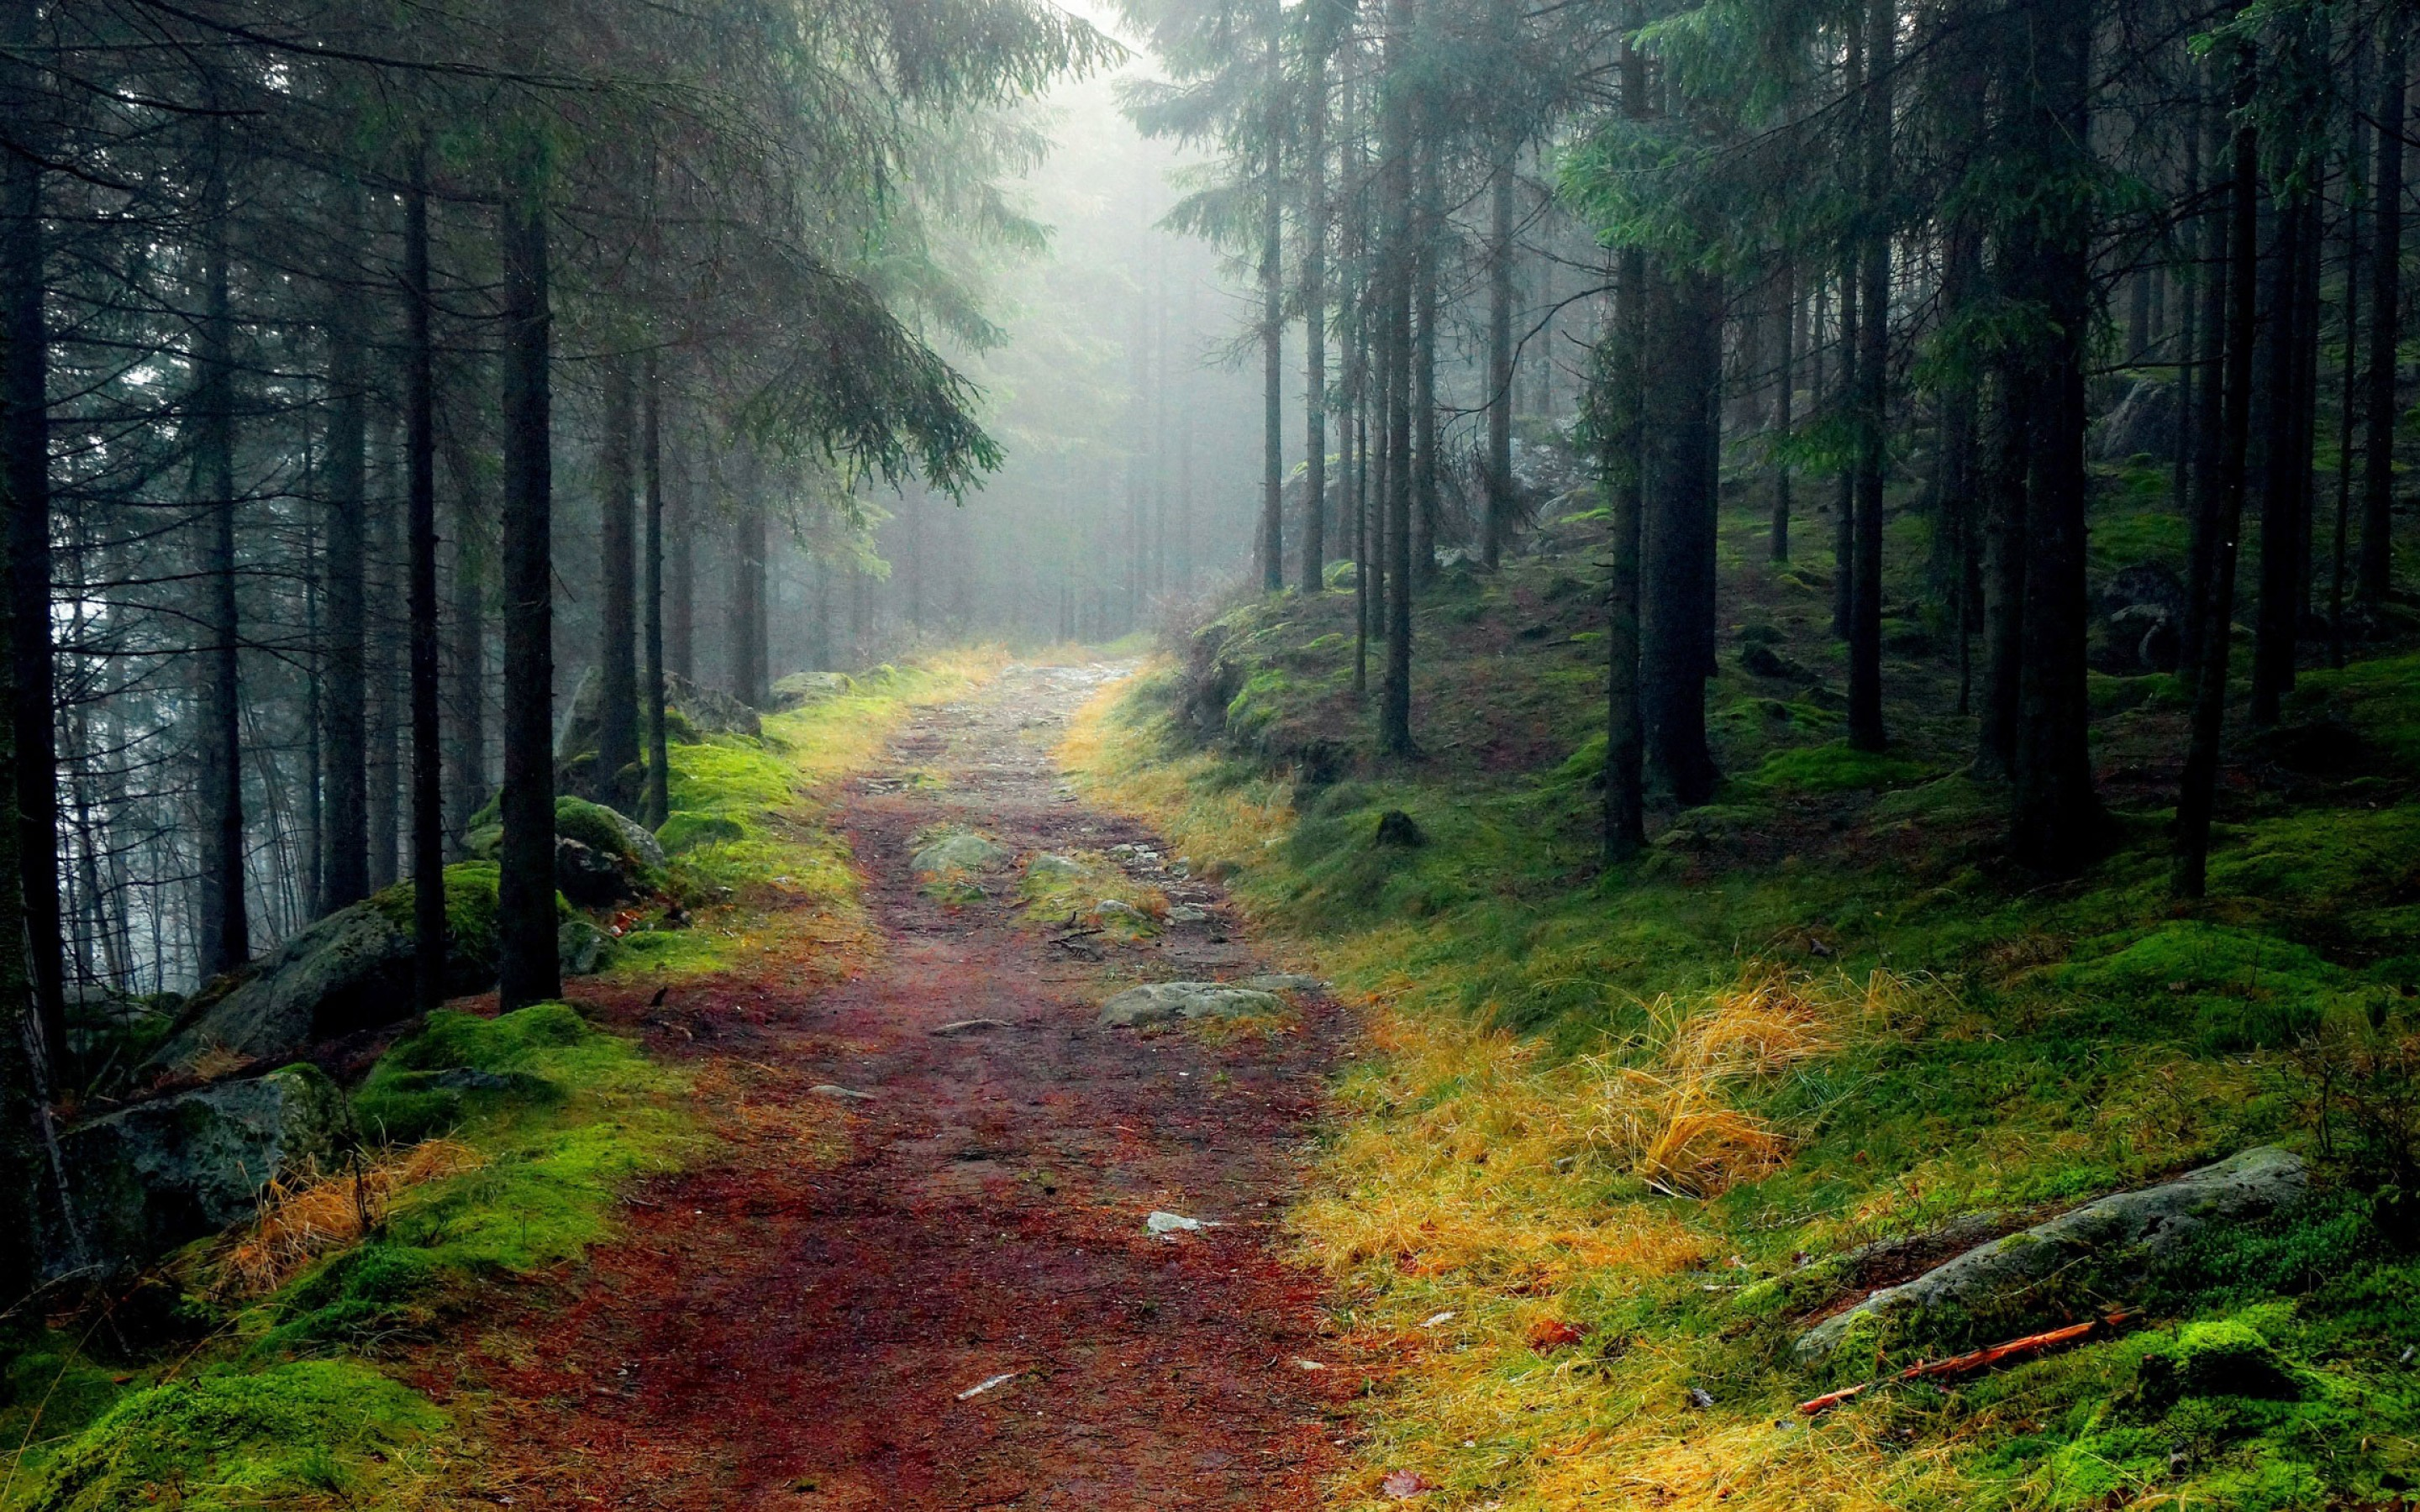 3d Wallpaper Hd 1080p Free Download For Pc Rusty Path Through Foggy Forest Wallpaper Nature And